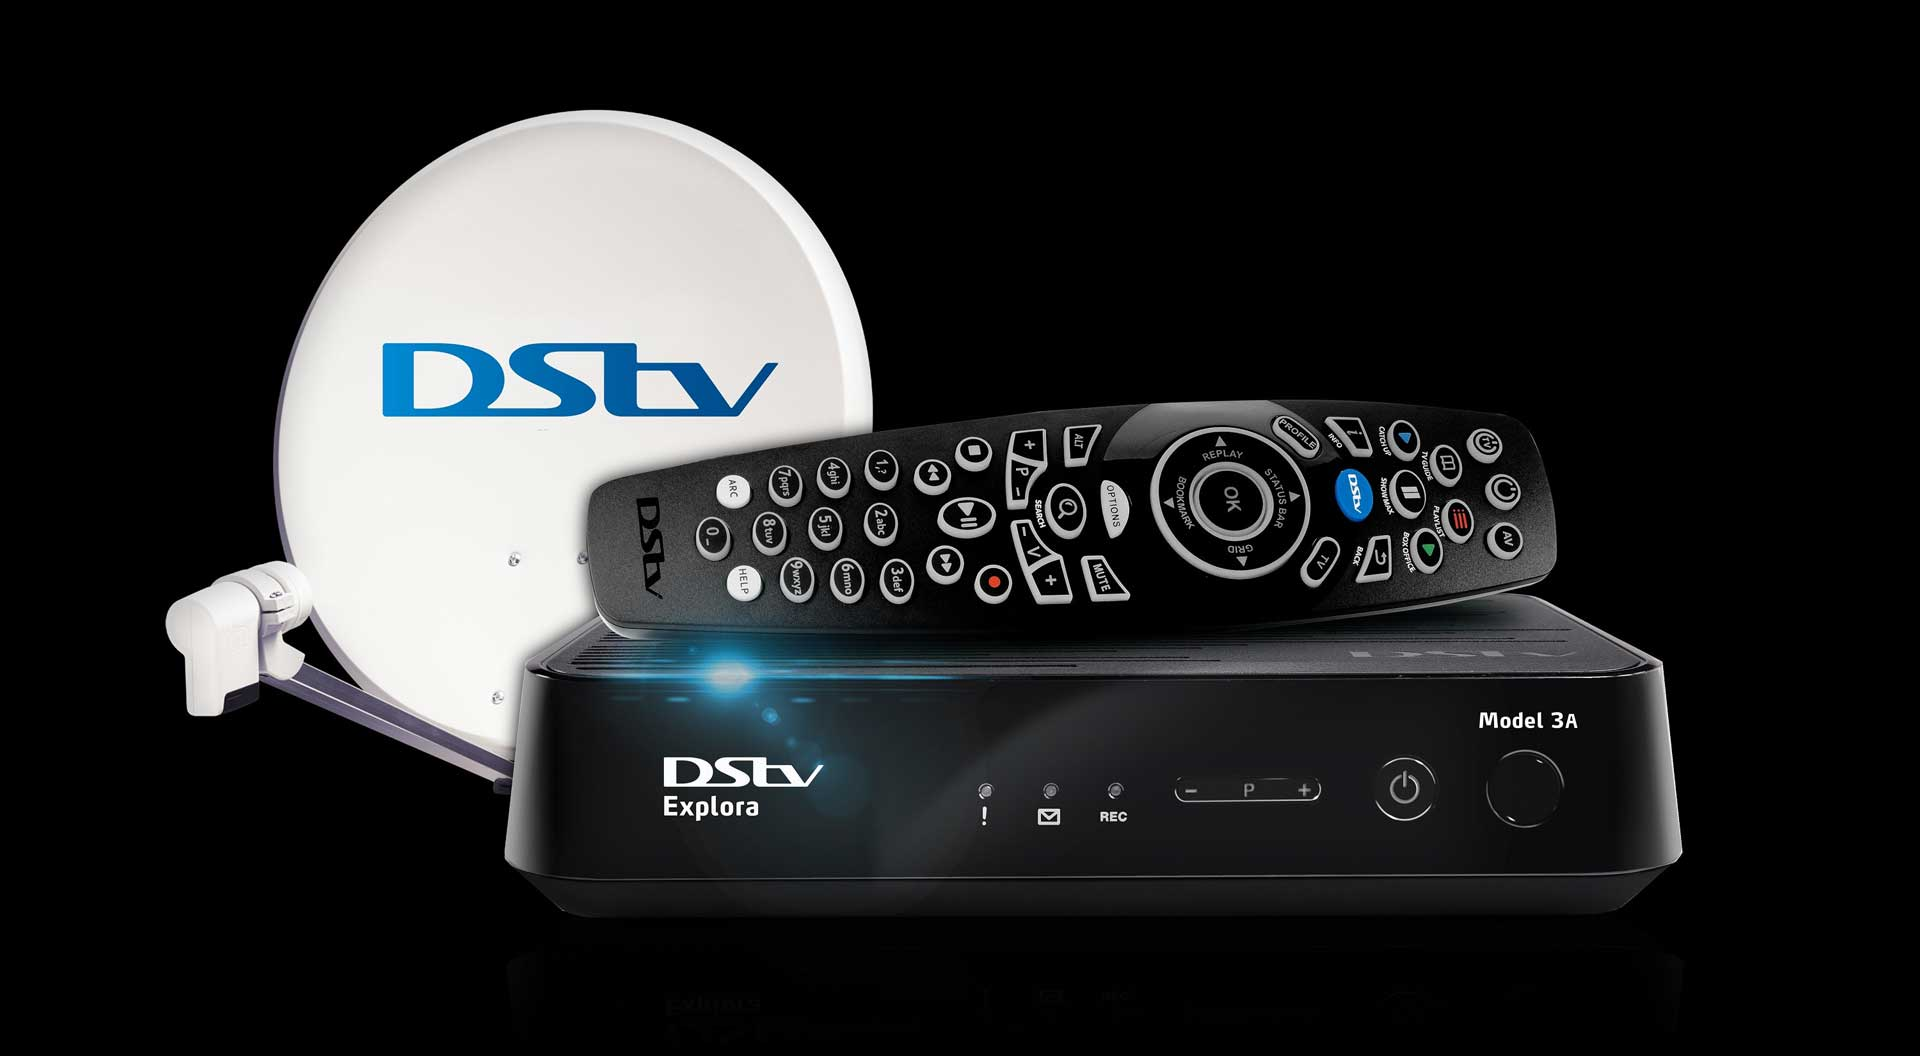 DSTV Price Increase 2020 - Here's What You'll Be Paying